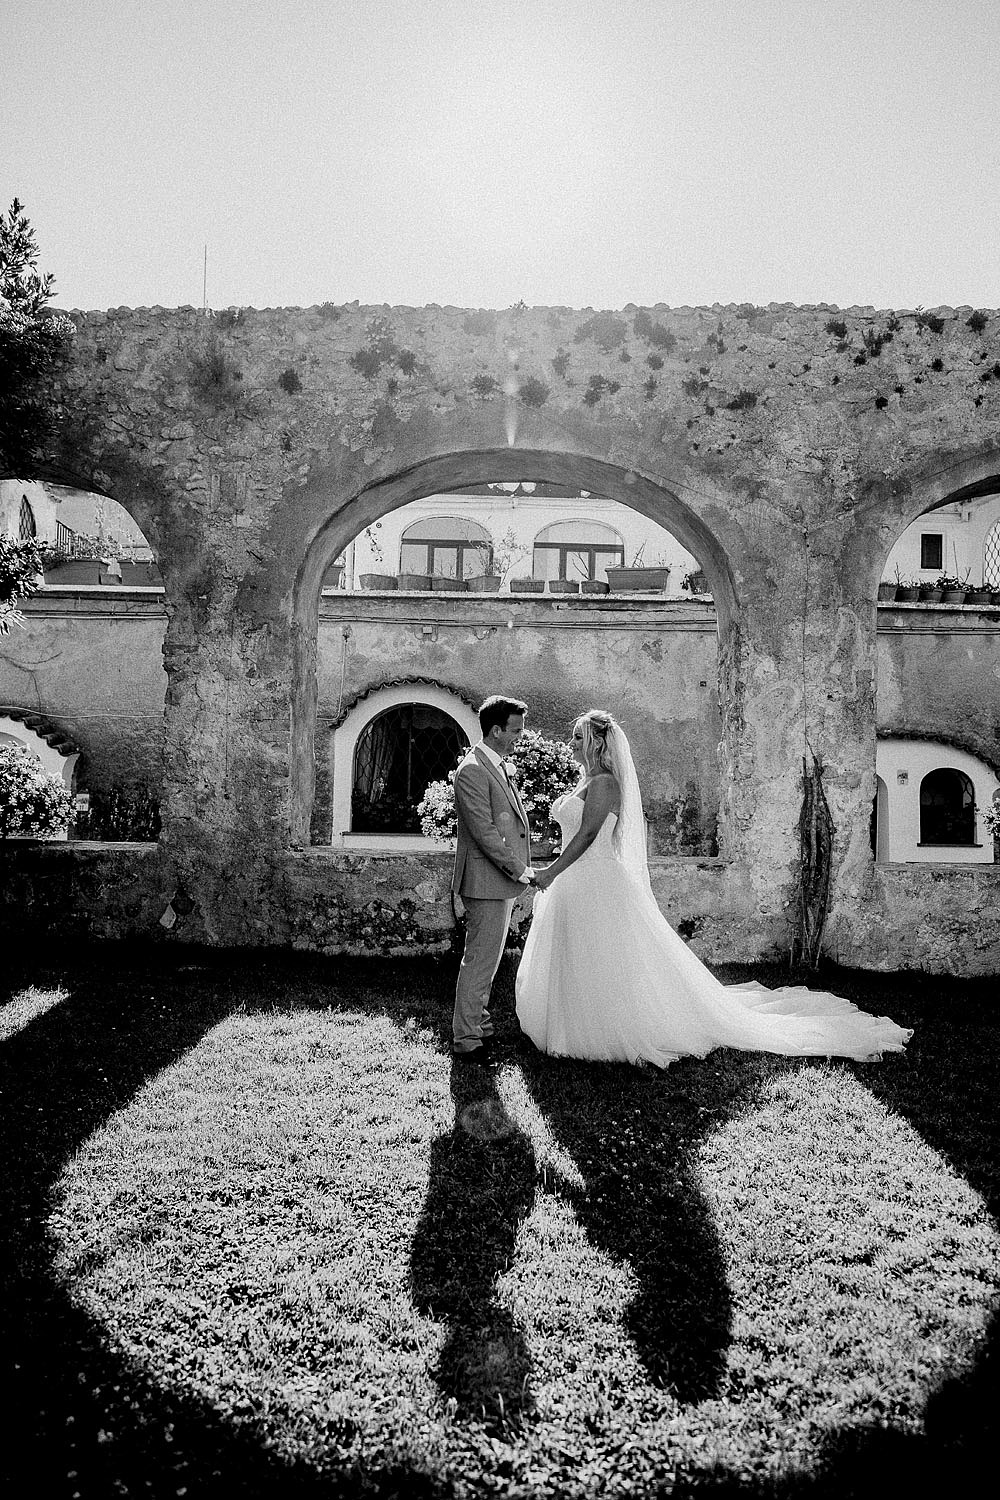 AMALFI COAST A MAGICAL LAND | WEDDING IN RAVELLO :: Luxury wedding photography - 41